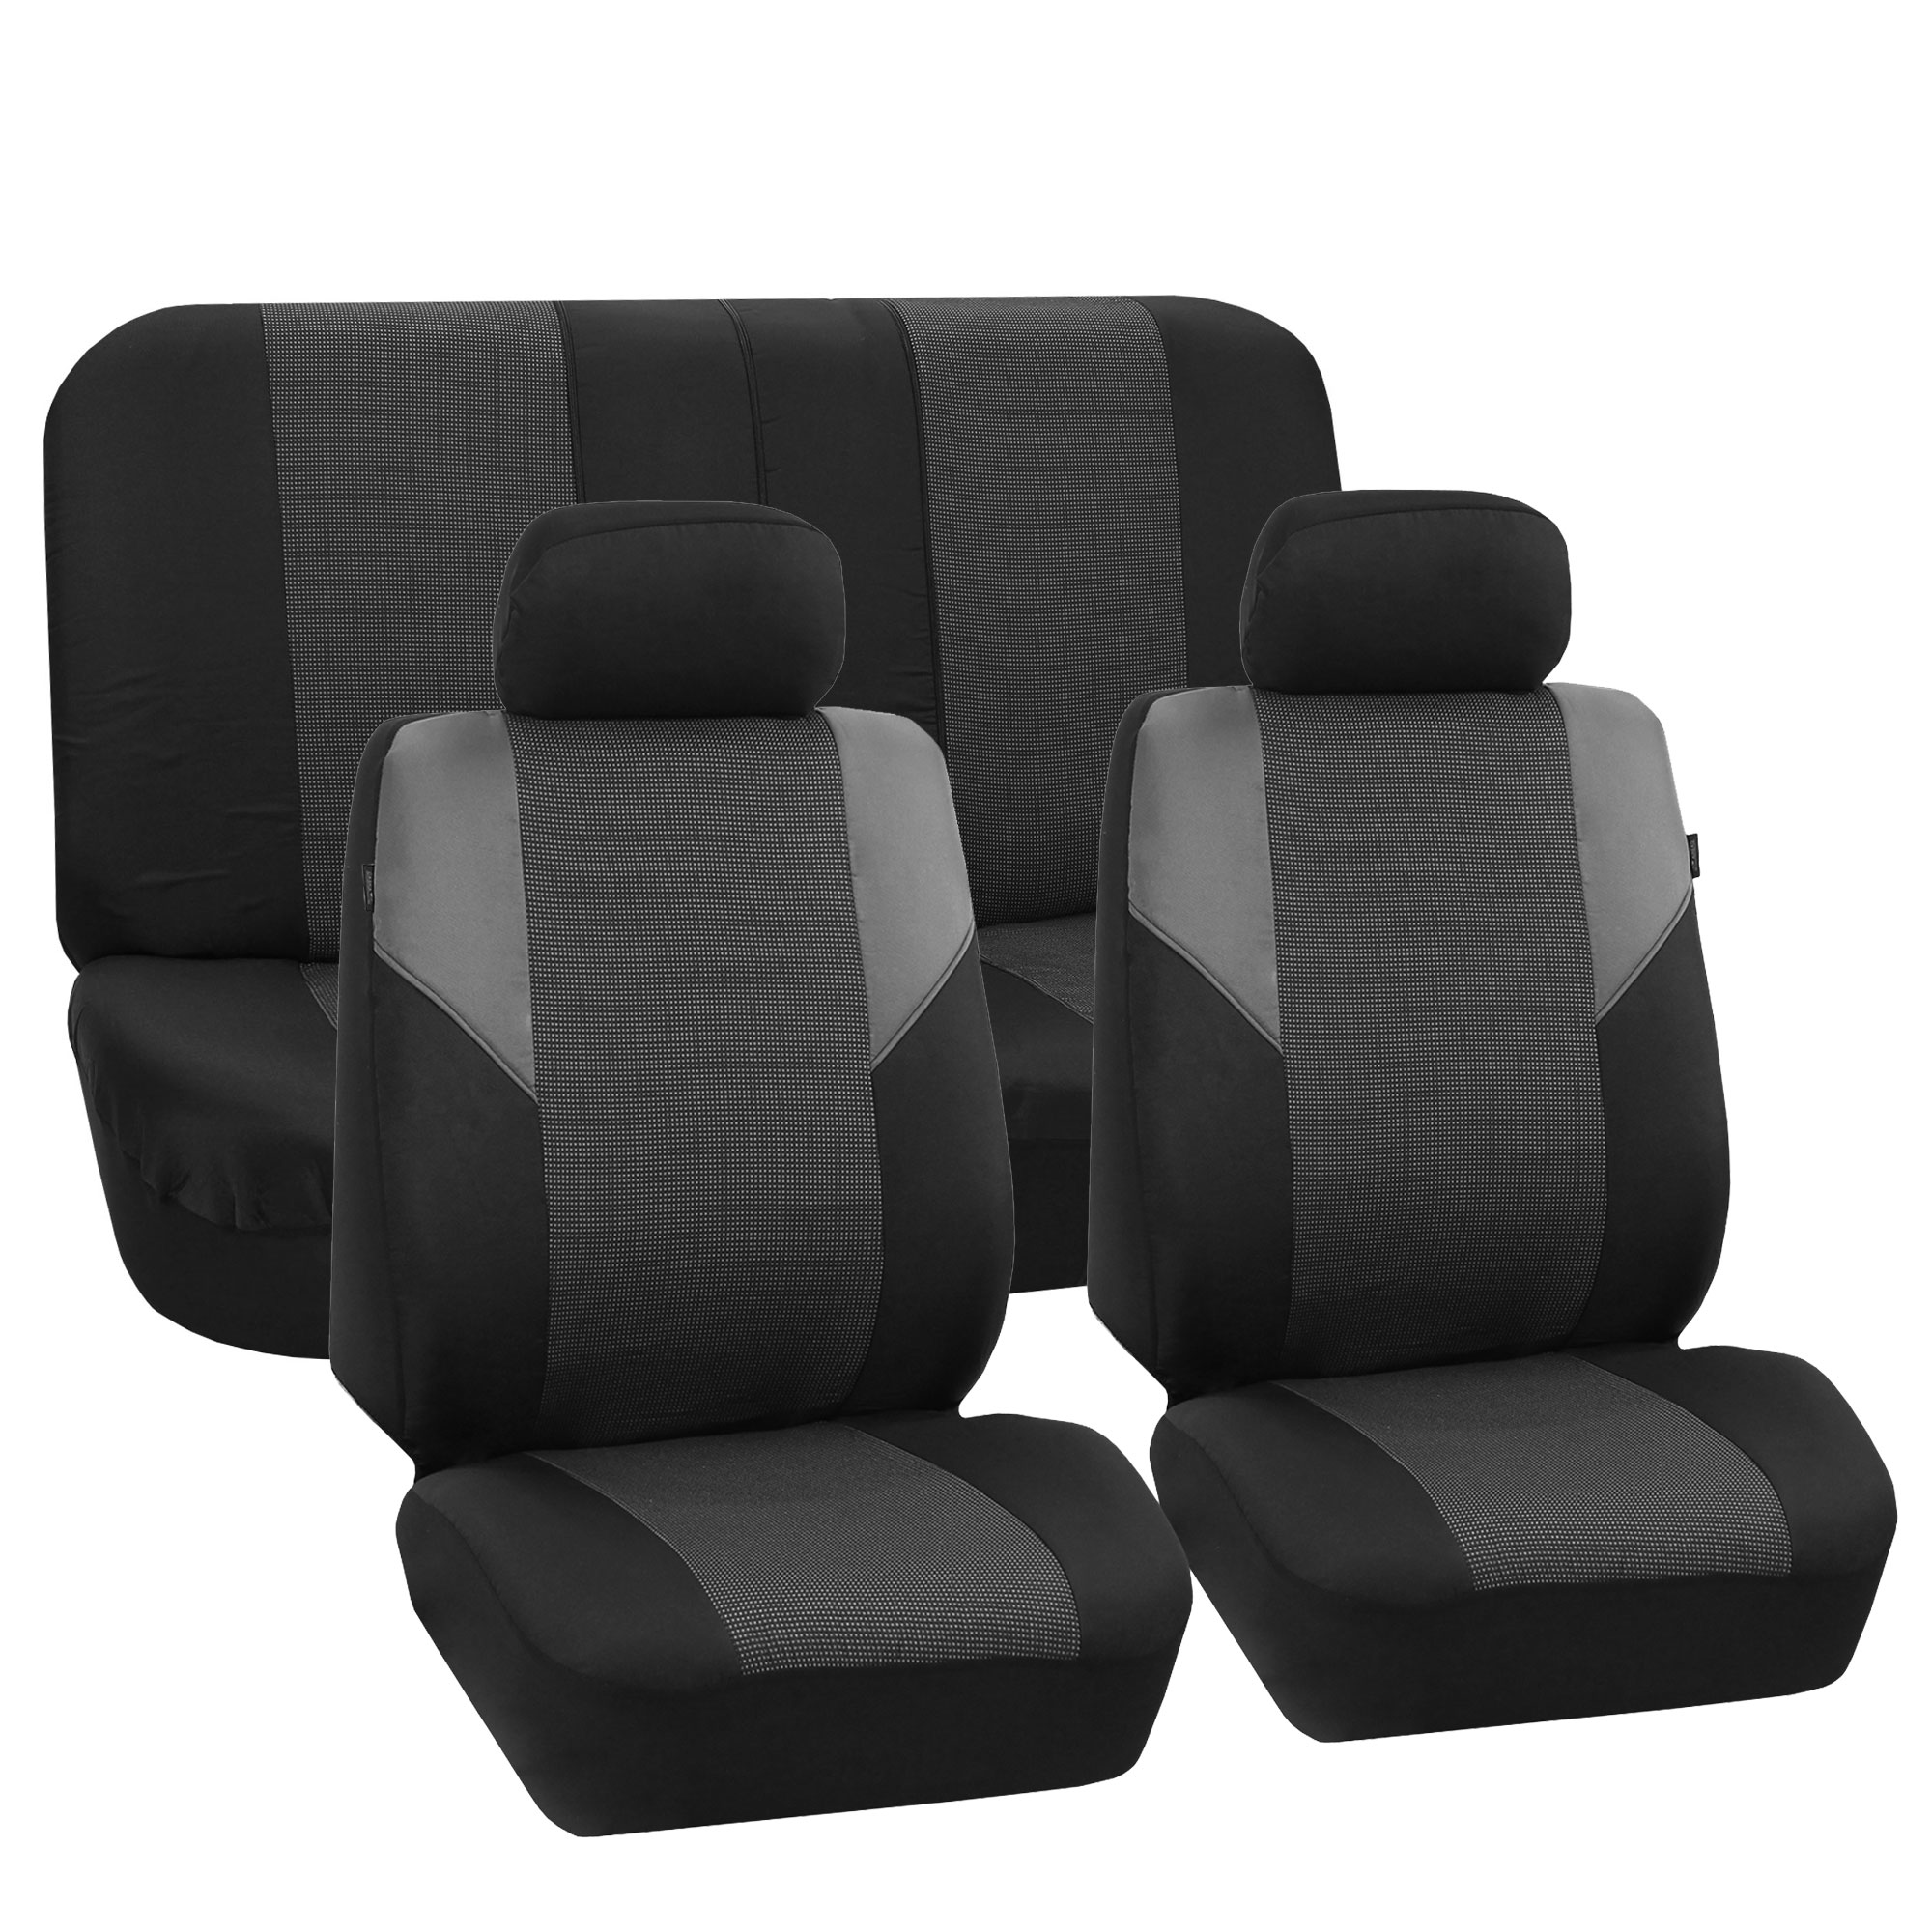 Car Seat Covers Black Gray Full Set For Auto W/2 Headrest